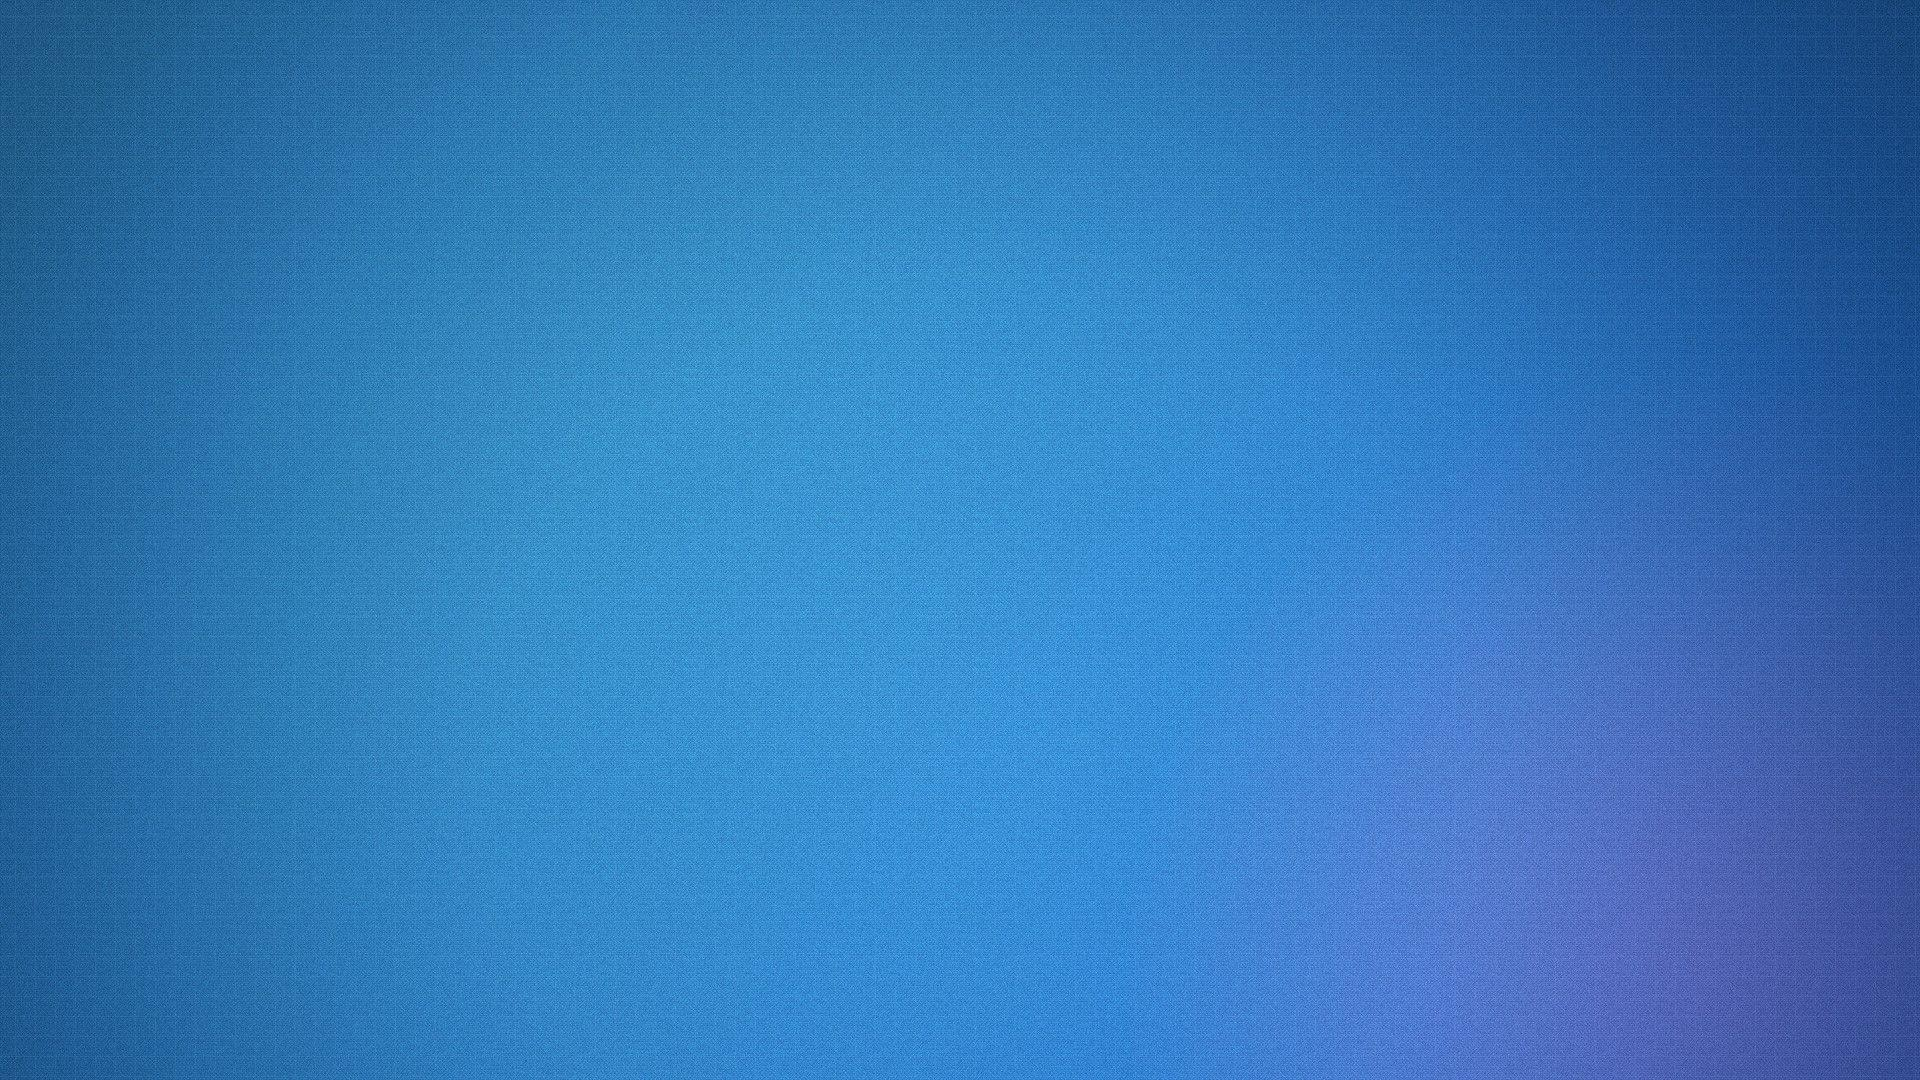 Light Blue Backgrounds - Wallpaper Cave